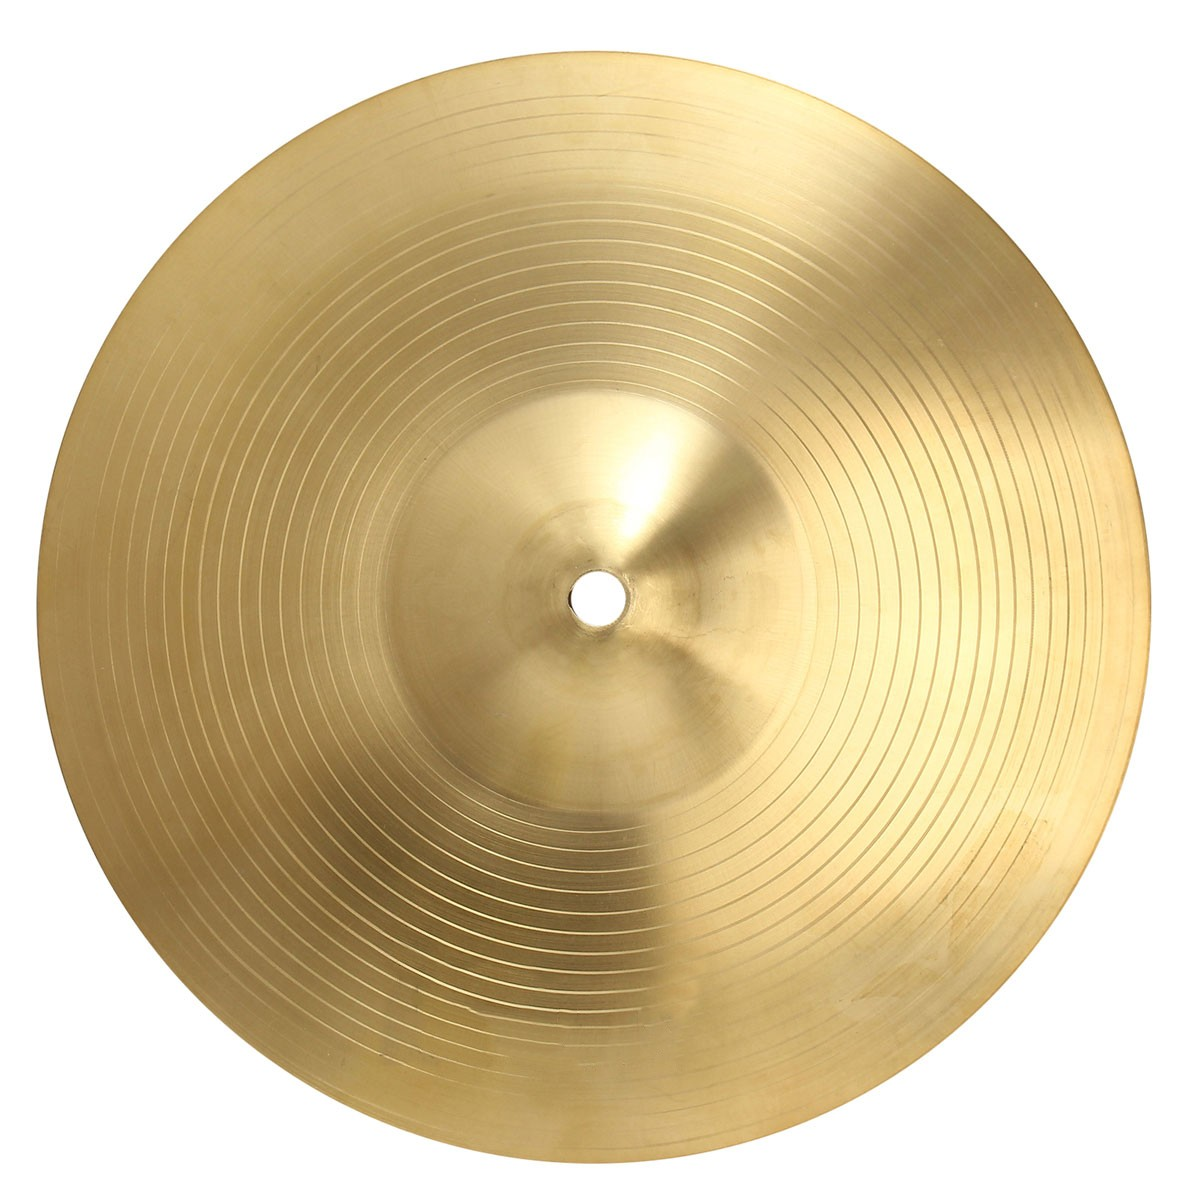 16 Crash Cymbal Brass Copper Hand Cymbals Gong for Band Rhythm Percussion Musical Instrument